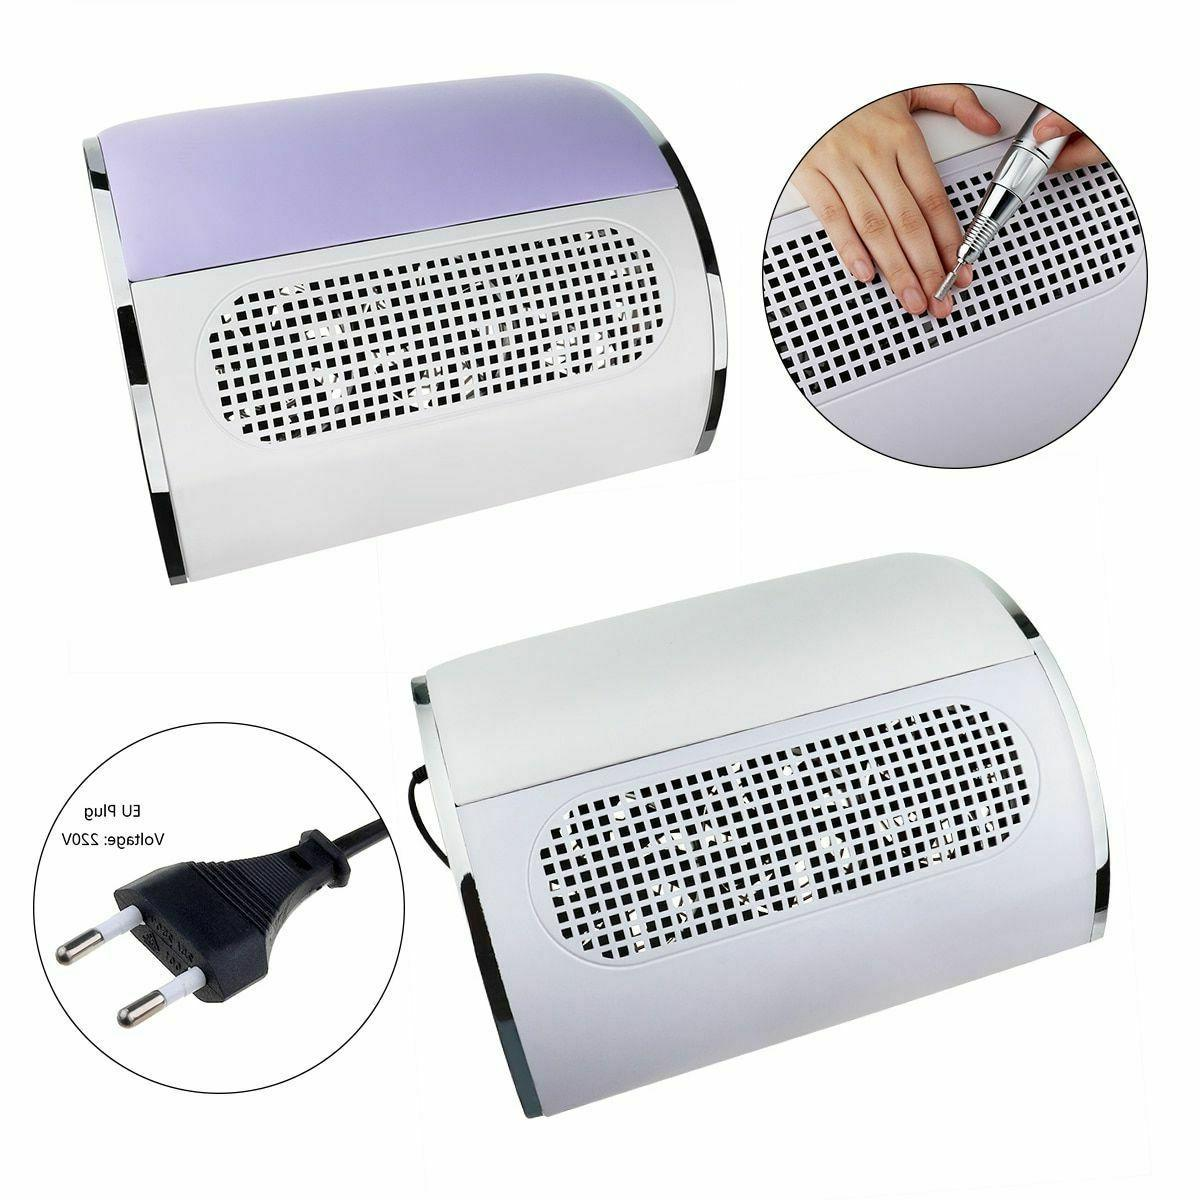 nail suction dust remover device manicure polish